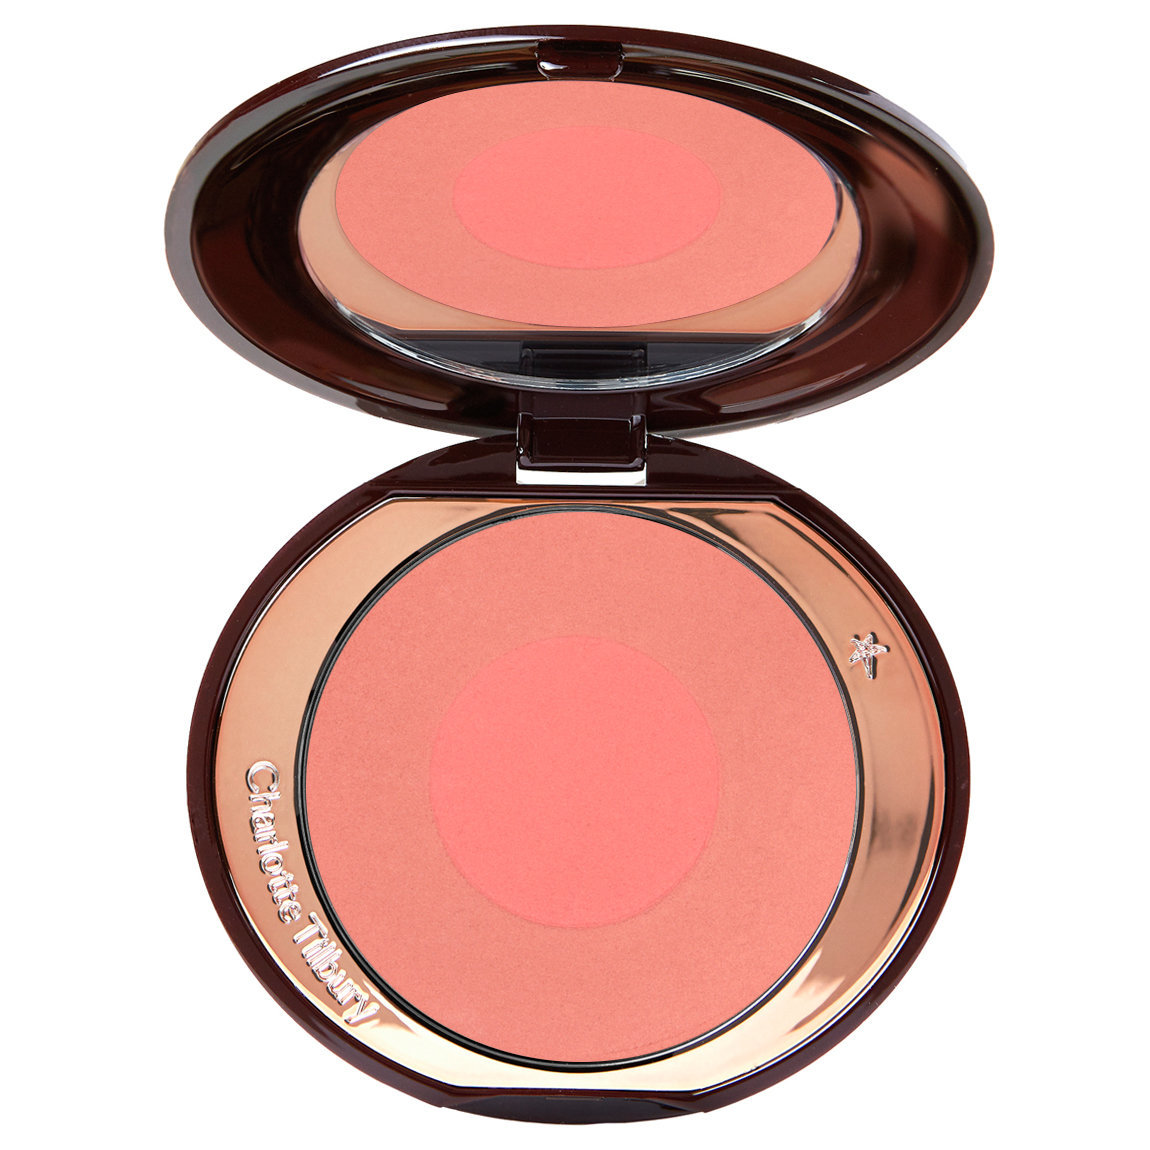 Charlotte Tilbury Cheek To Chic Ecstasy alternative view 1 - product swatch.